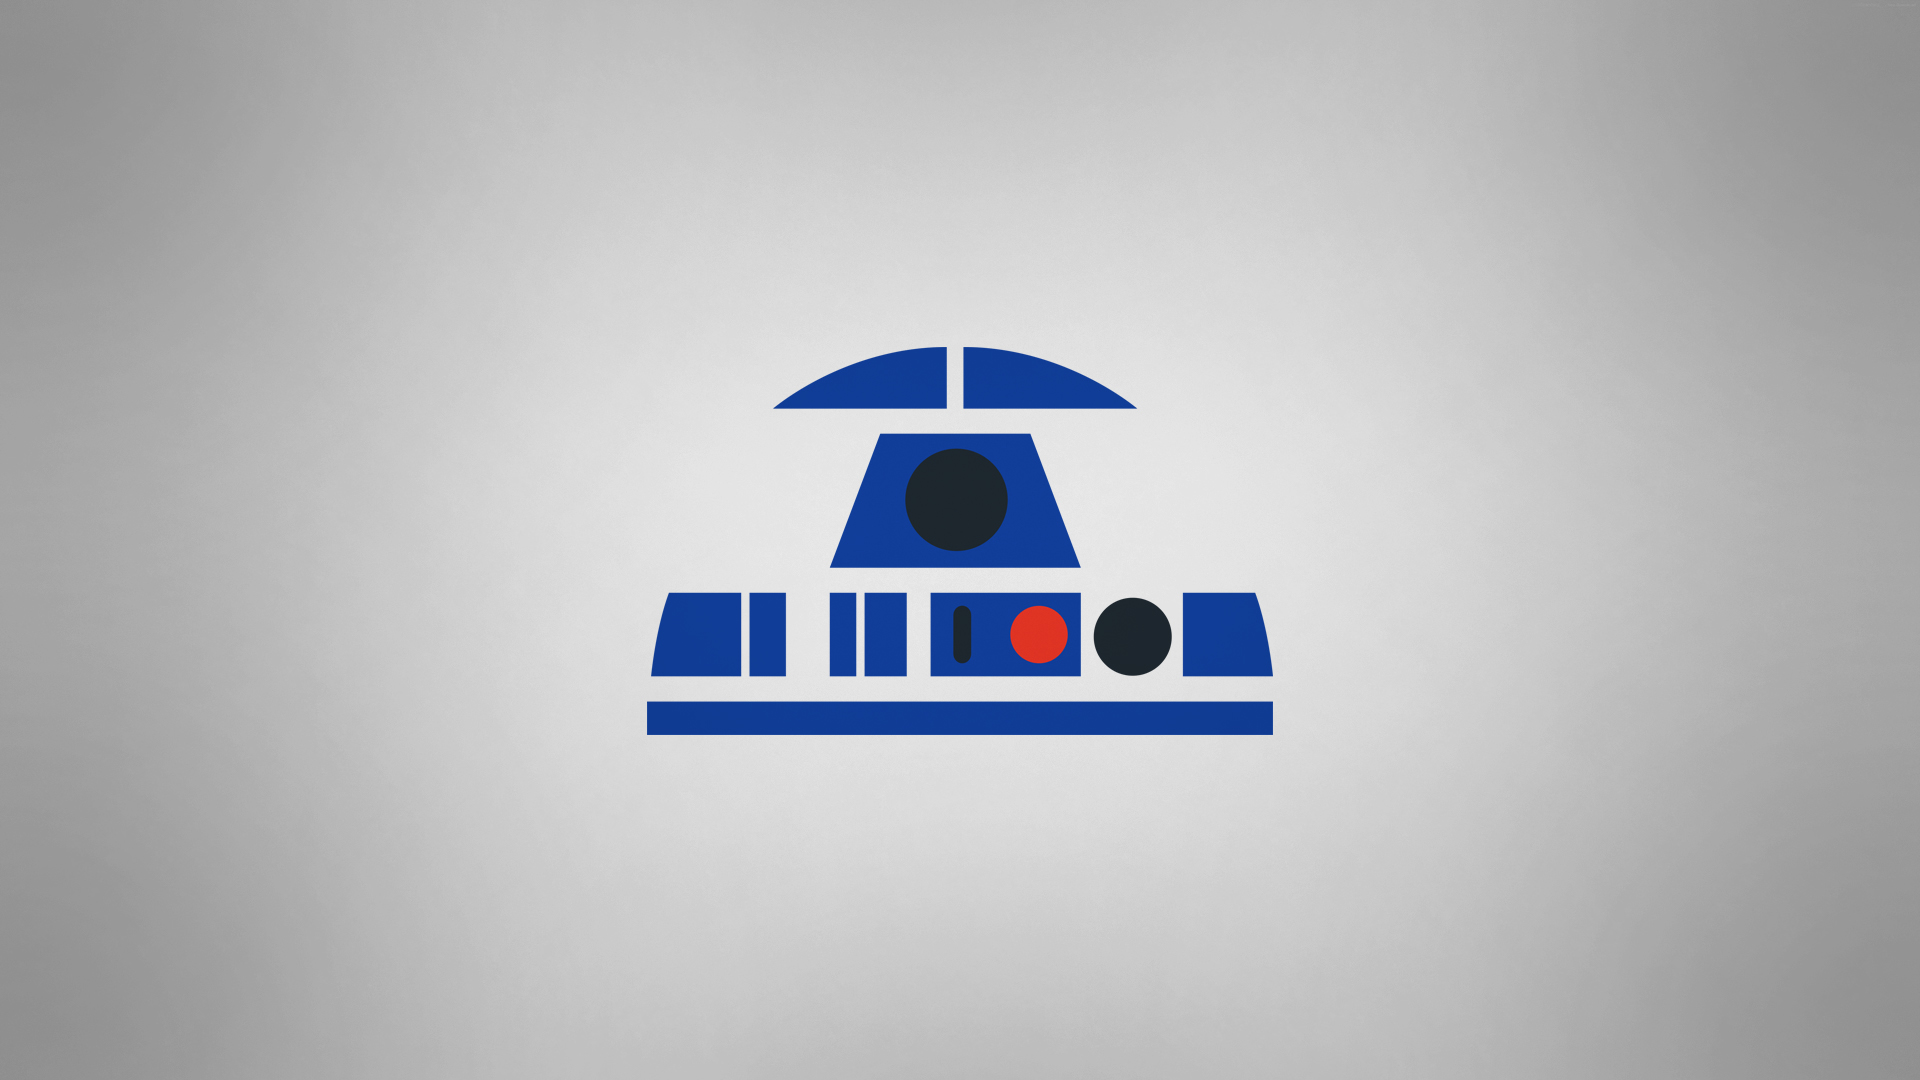 Star Wars Minimalist 1 On Behance